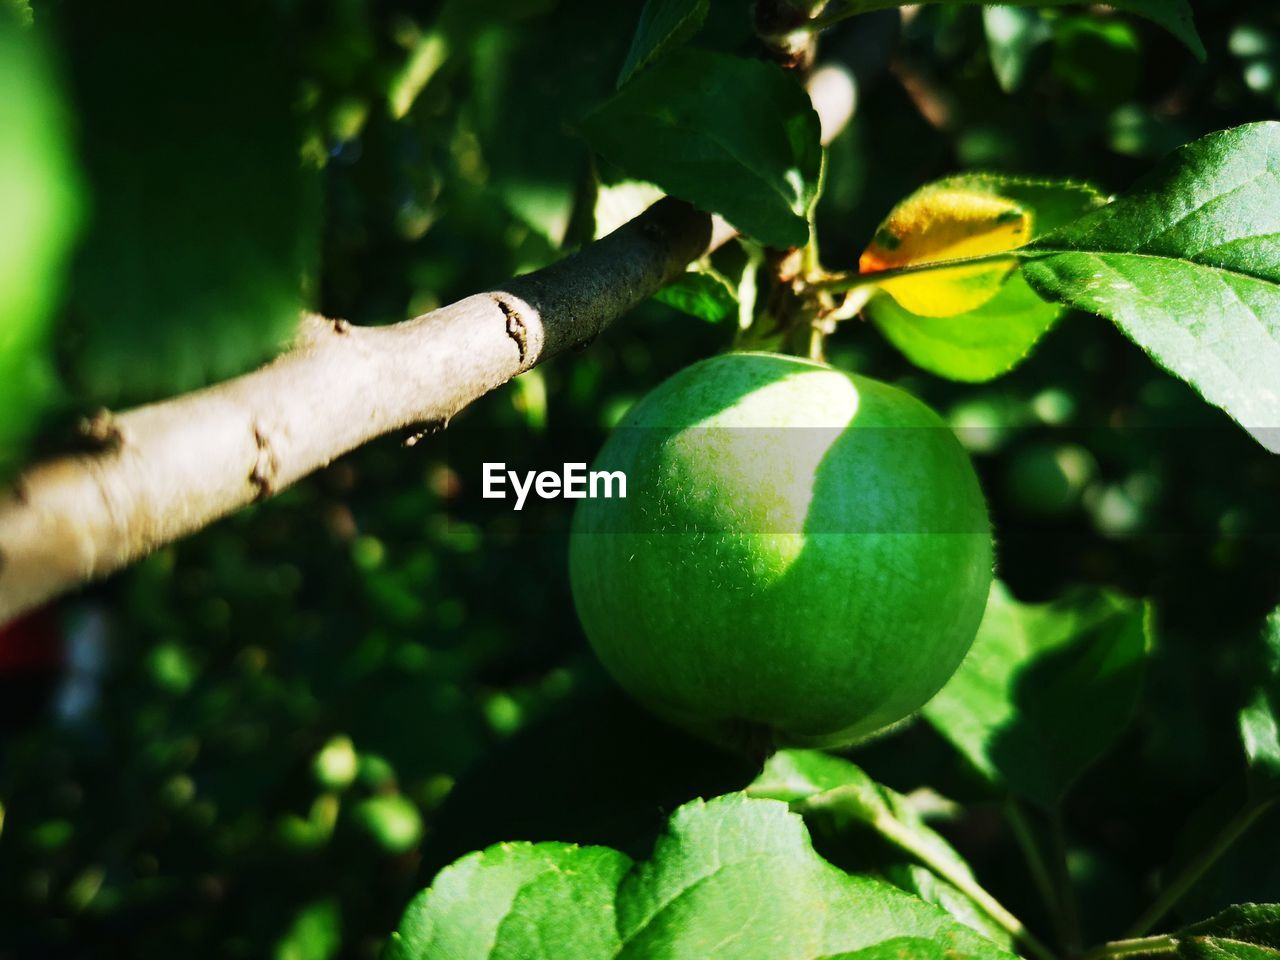 green color, plant part, leaf, growth, food, fruit, healthy eating, plant, freshness, food and drink, tree, nature, wellbeing, close-up, day, branch, fruit tree, beauty in nature, no people, focus on foreground, outdoors, ripe